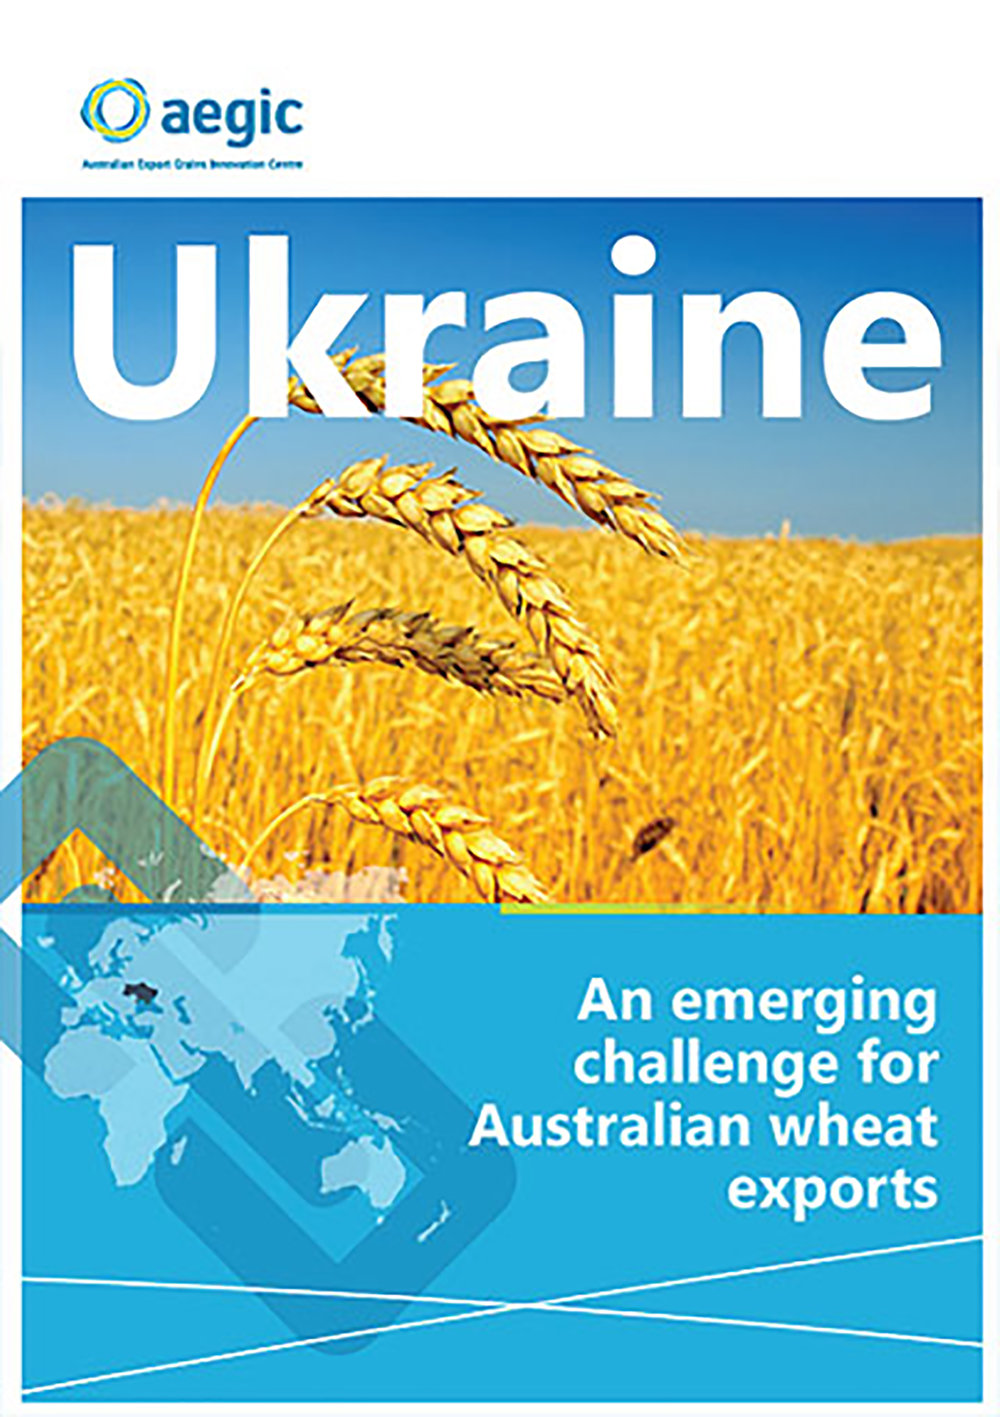 Ukraine - An emerging challenge for Australian wheat exports (2016)